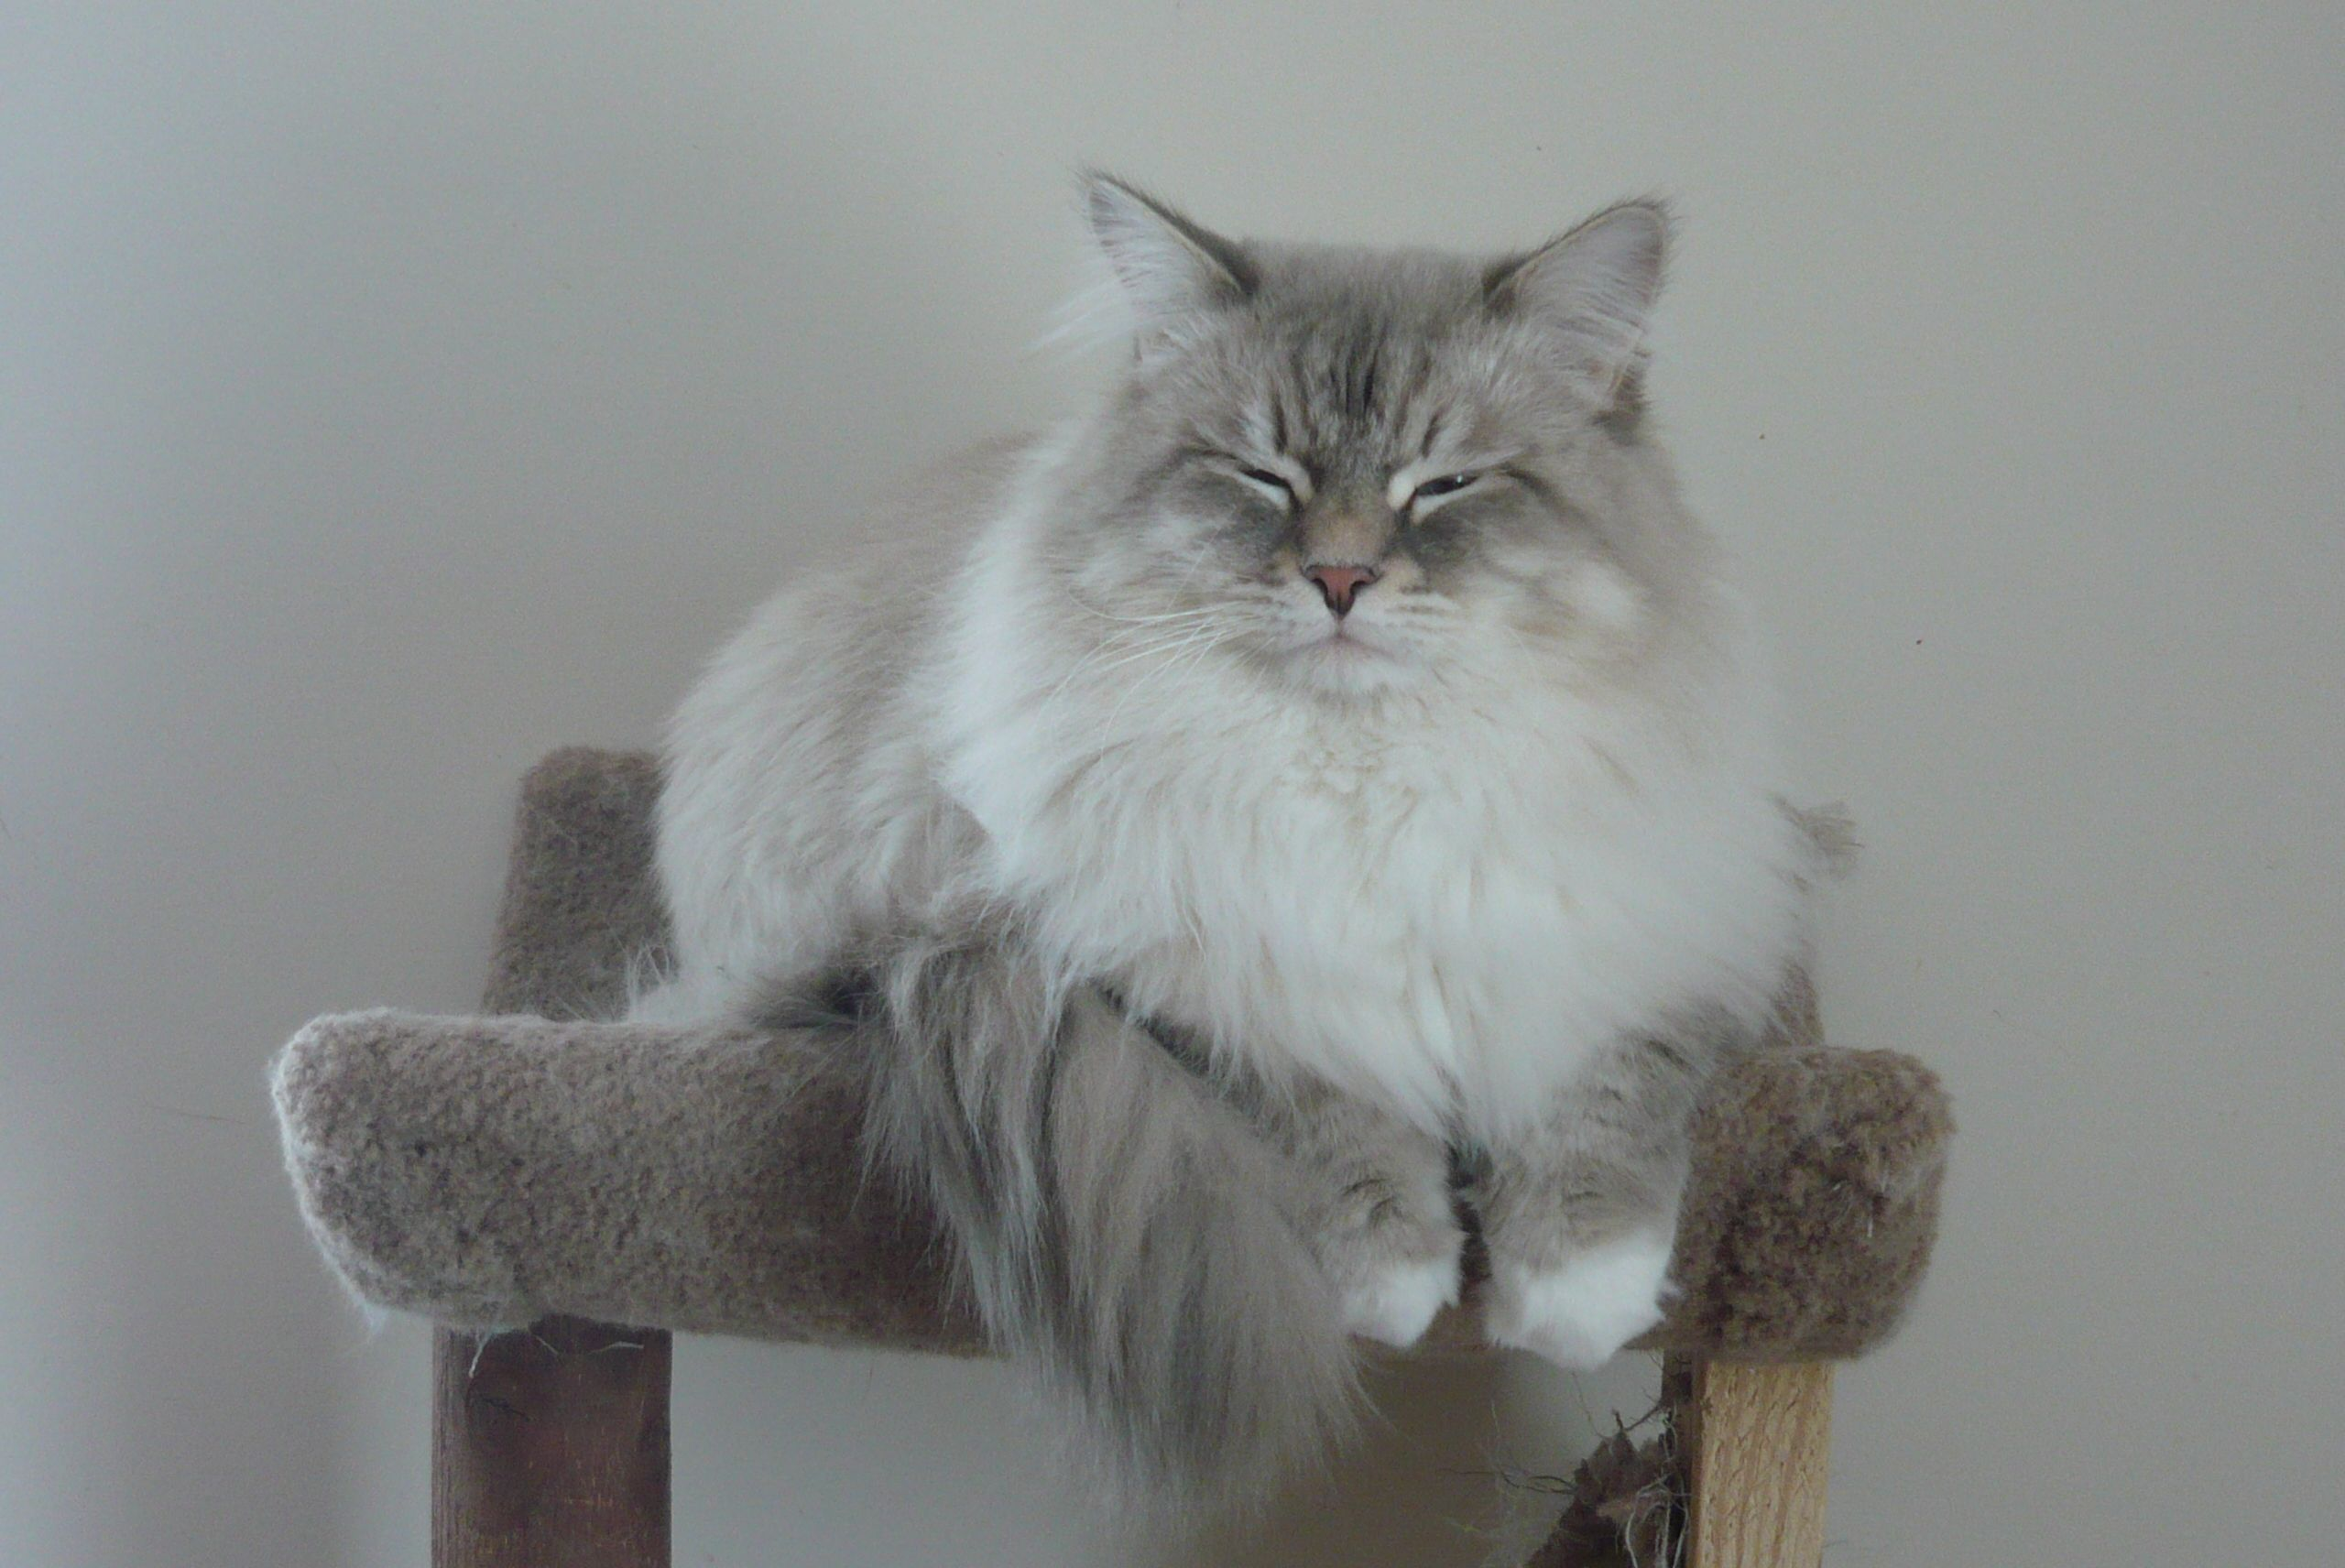 Neva Masquerade breed is a cat for those who love animals with a dense, beautiful fur